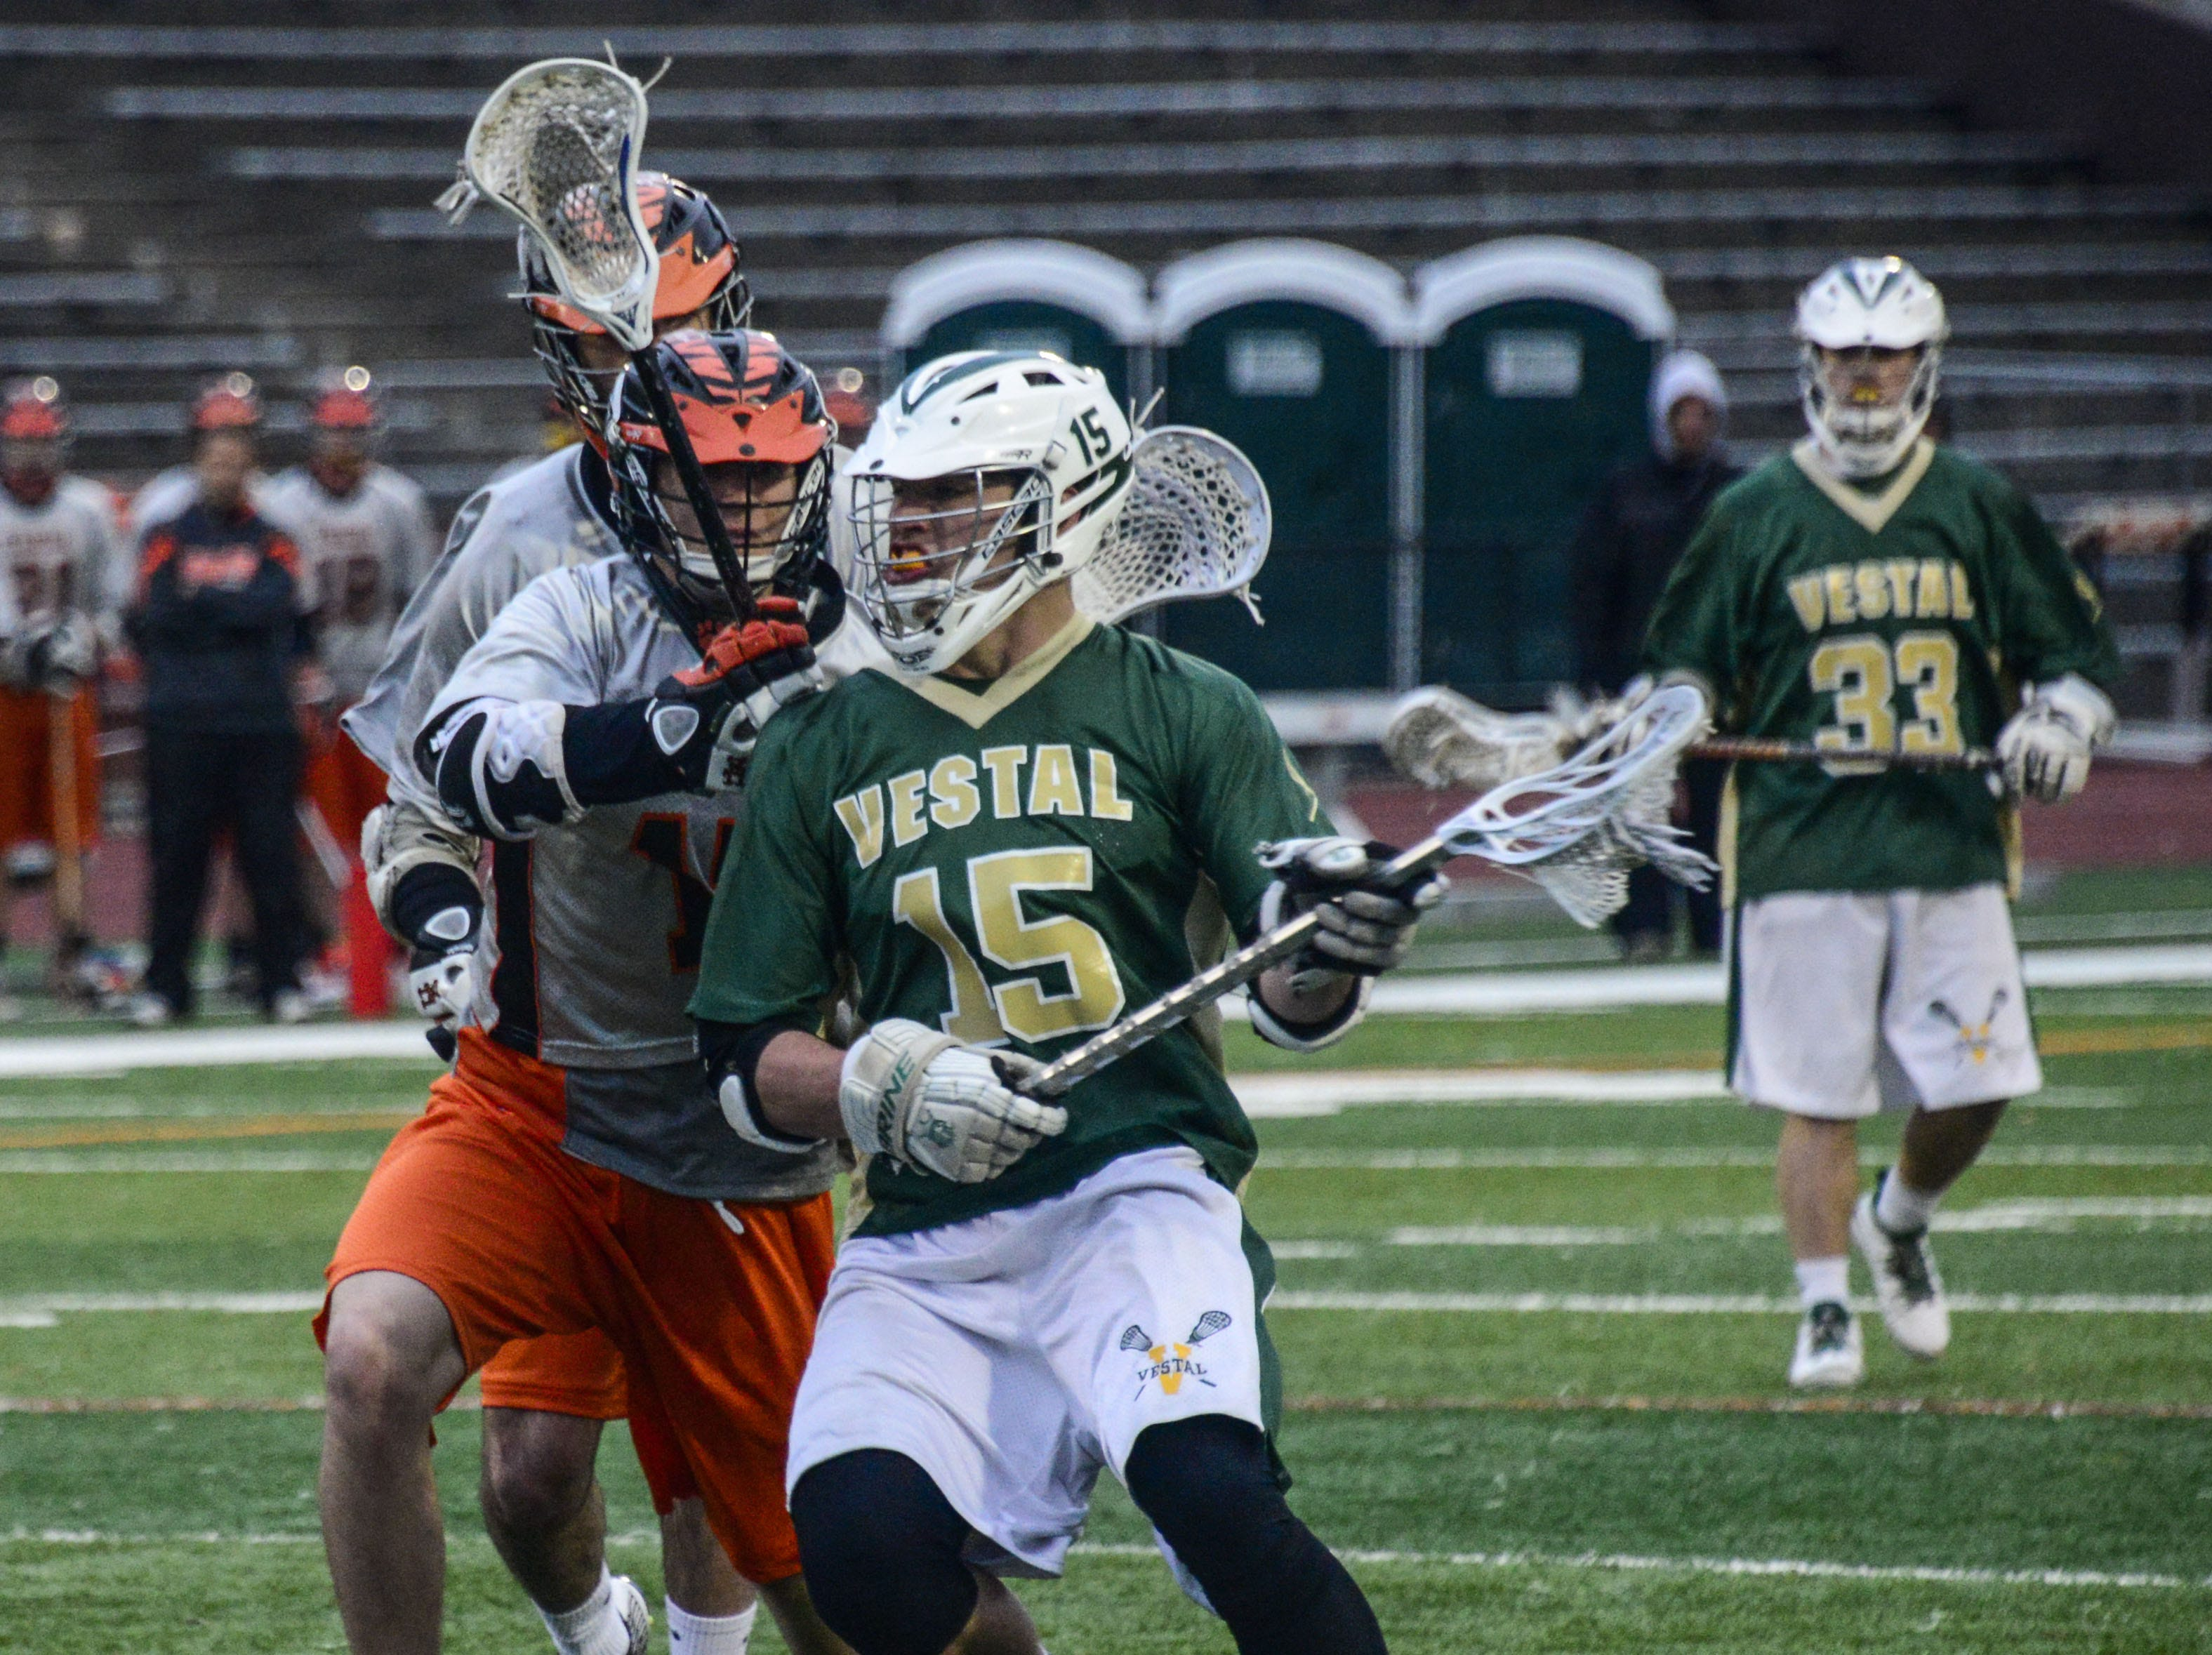 2014: Vestal's Pat Carlin moves against a defender from Union-Endicott on Wednesday at U-E. Carlin is one of two Section 4 players going to Syracuse next year.